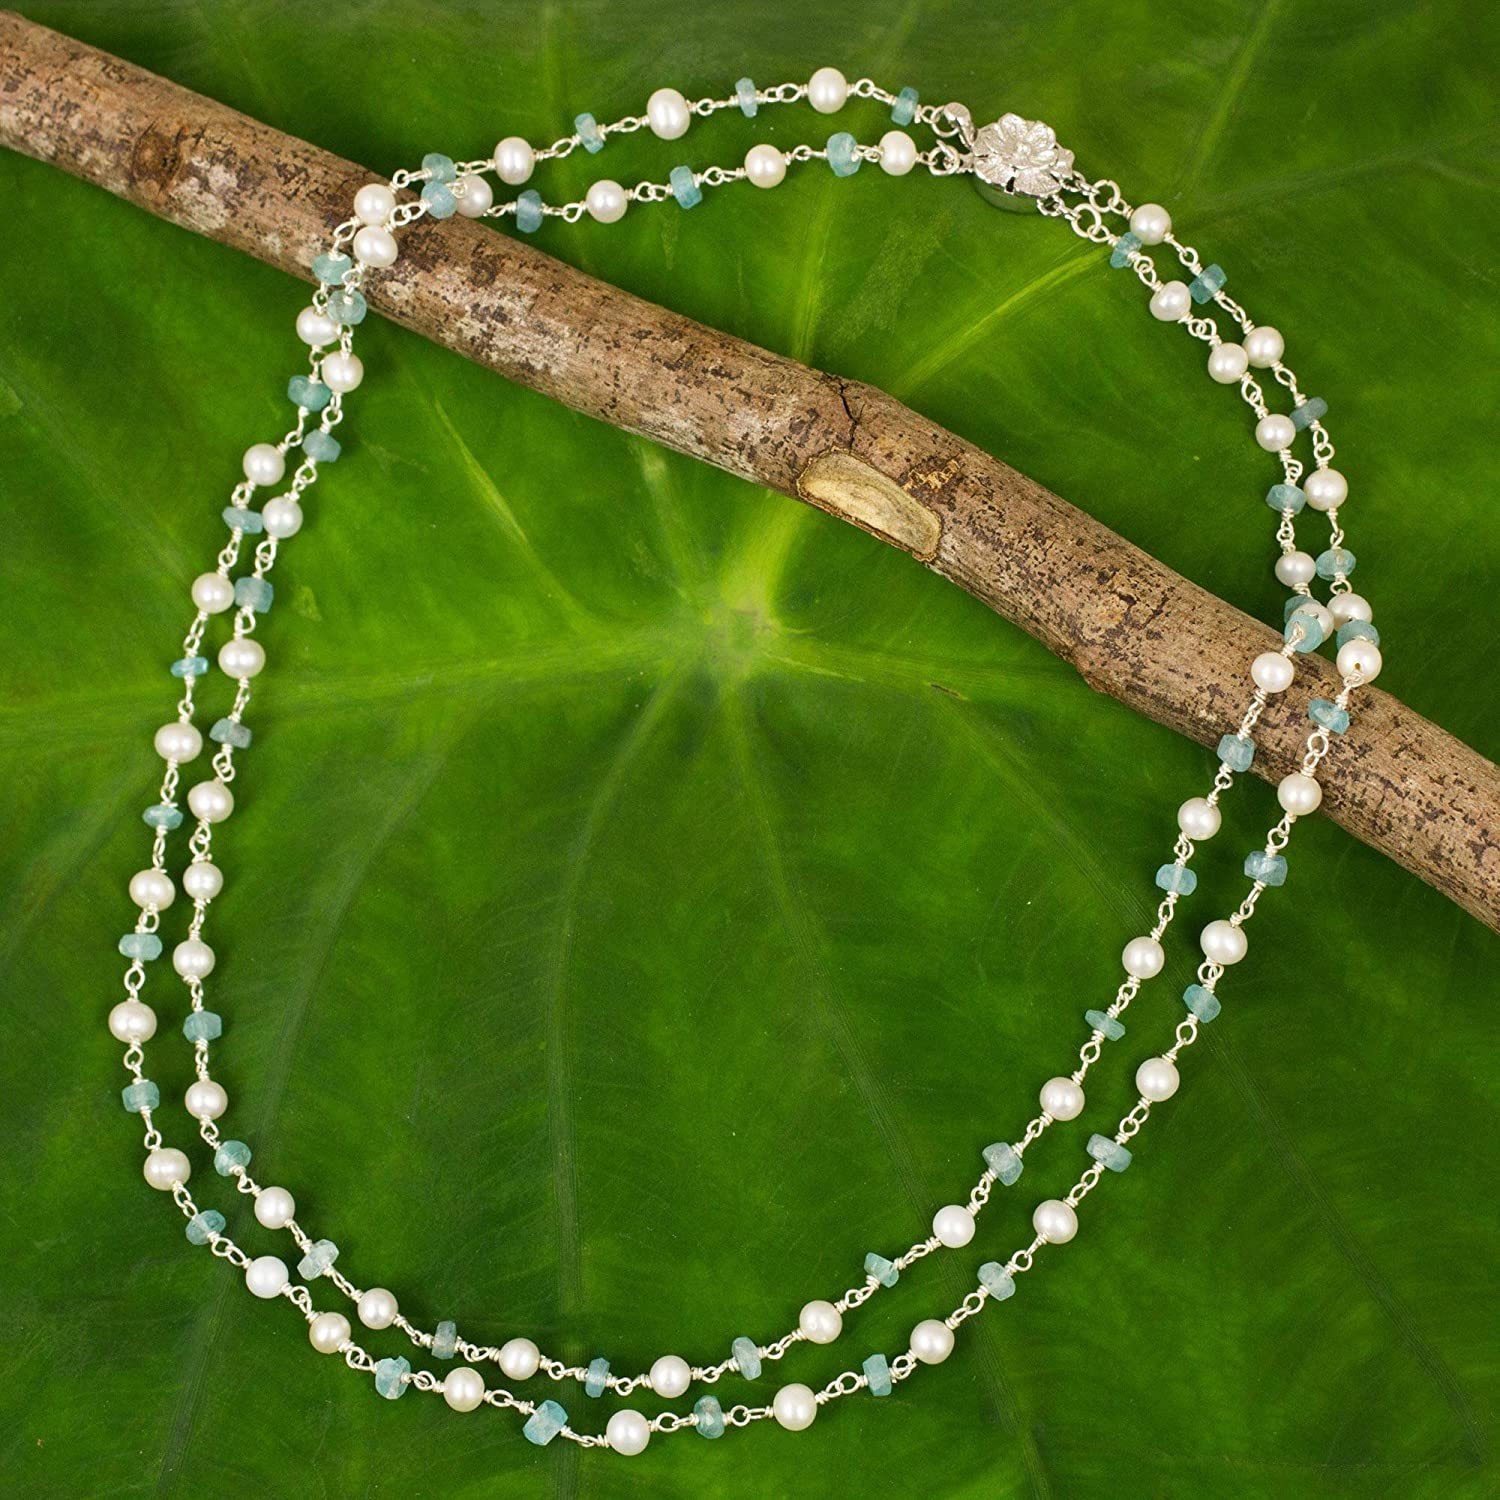 NOVICA Apatite Cultured Freshwater Pearl .925 Sterling Silver Necklace 16.75 Regal Water Lily